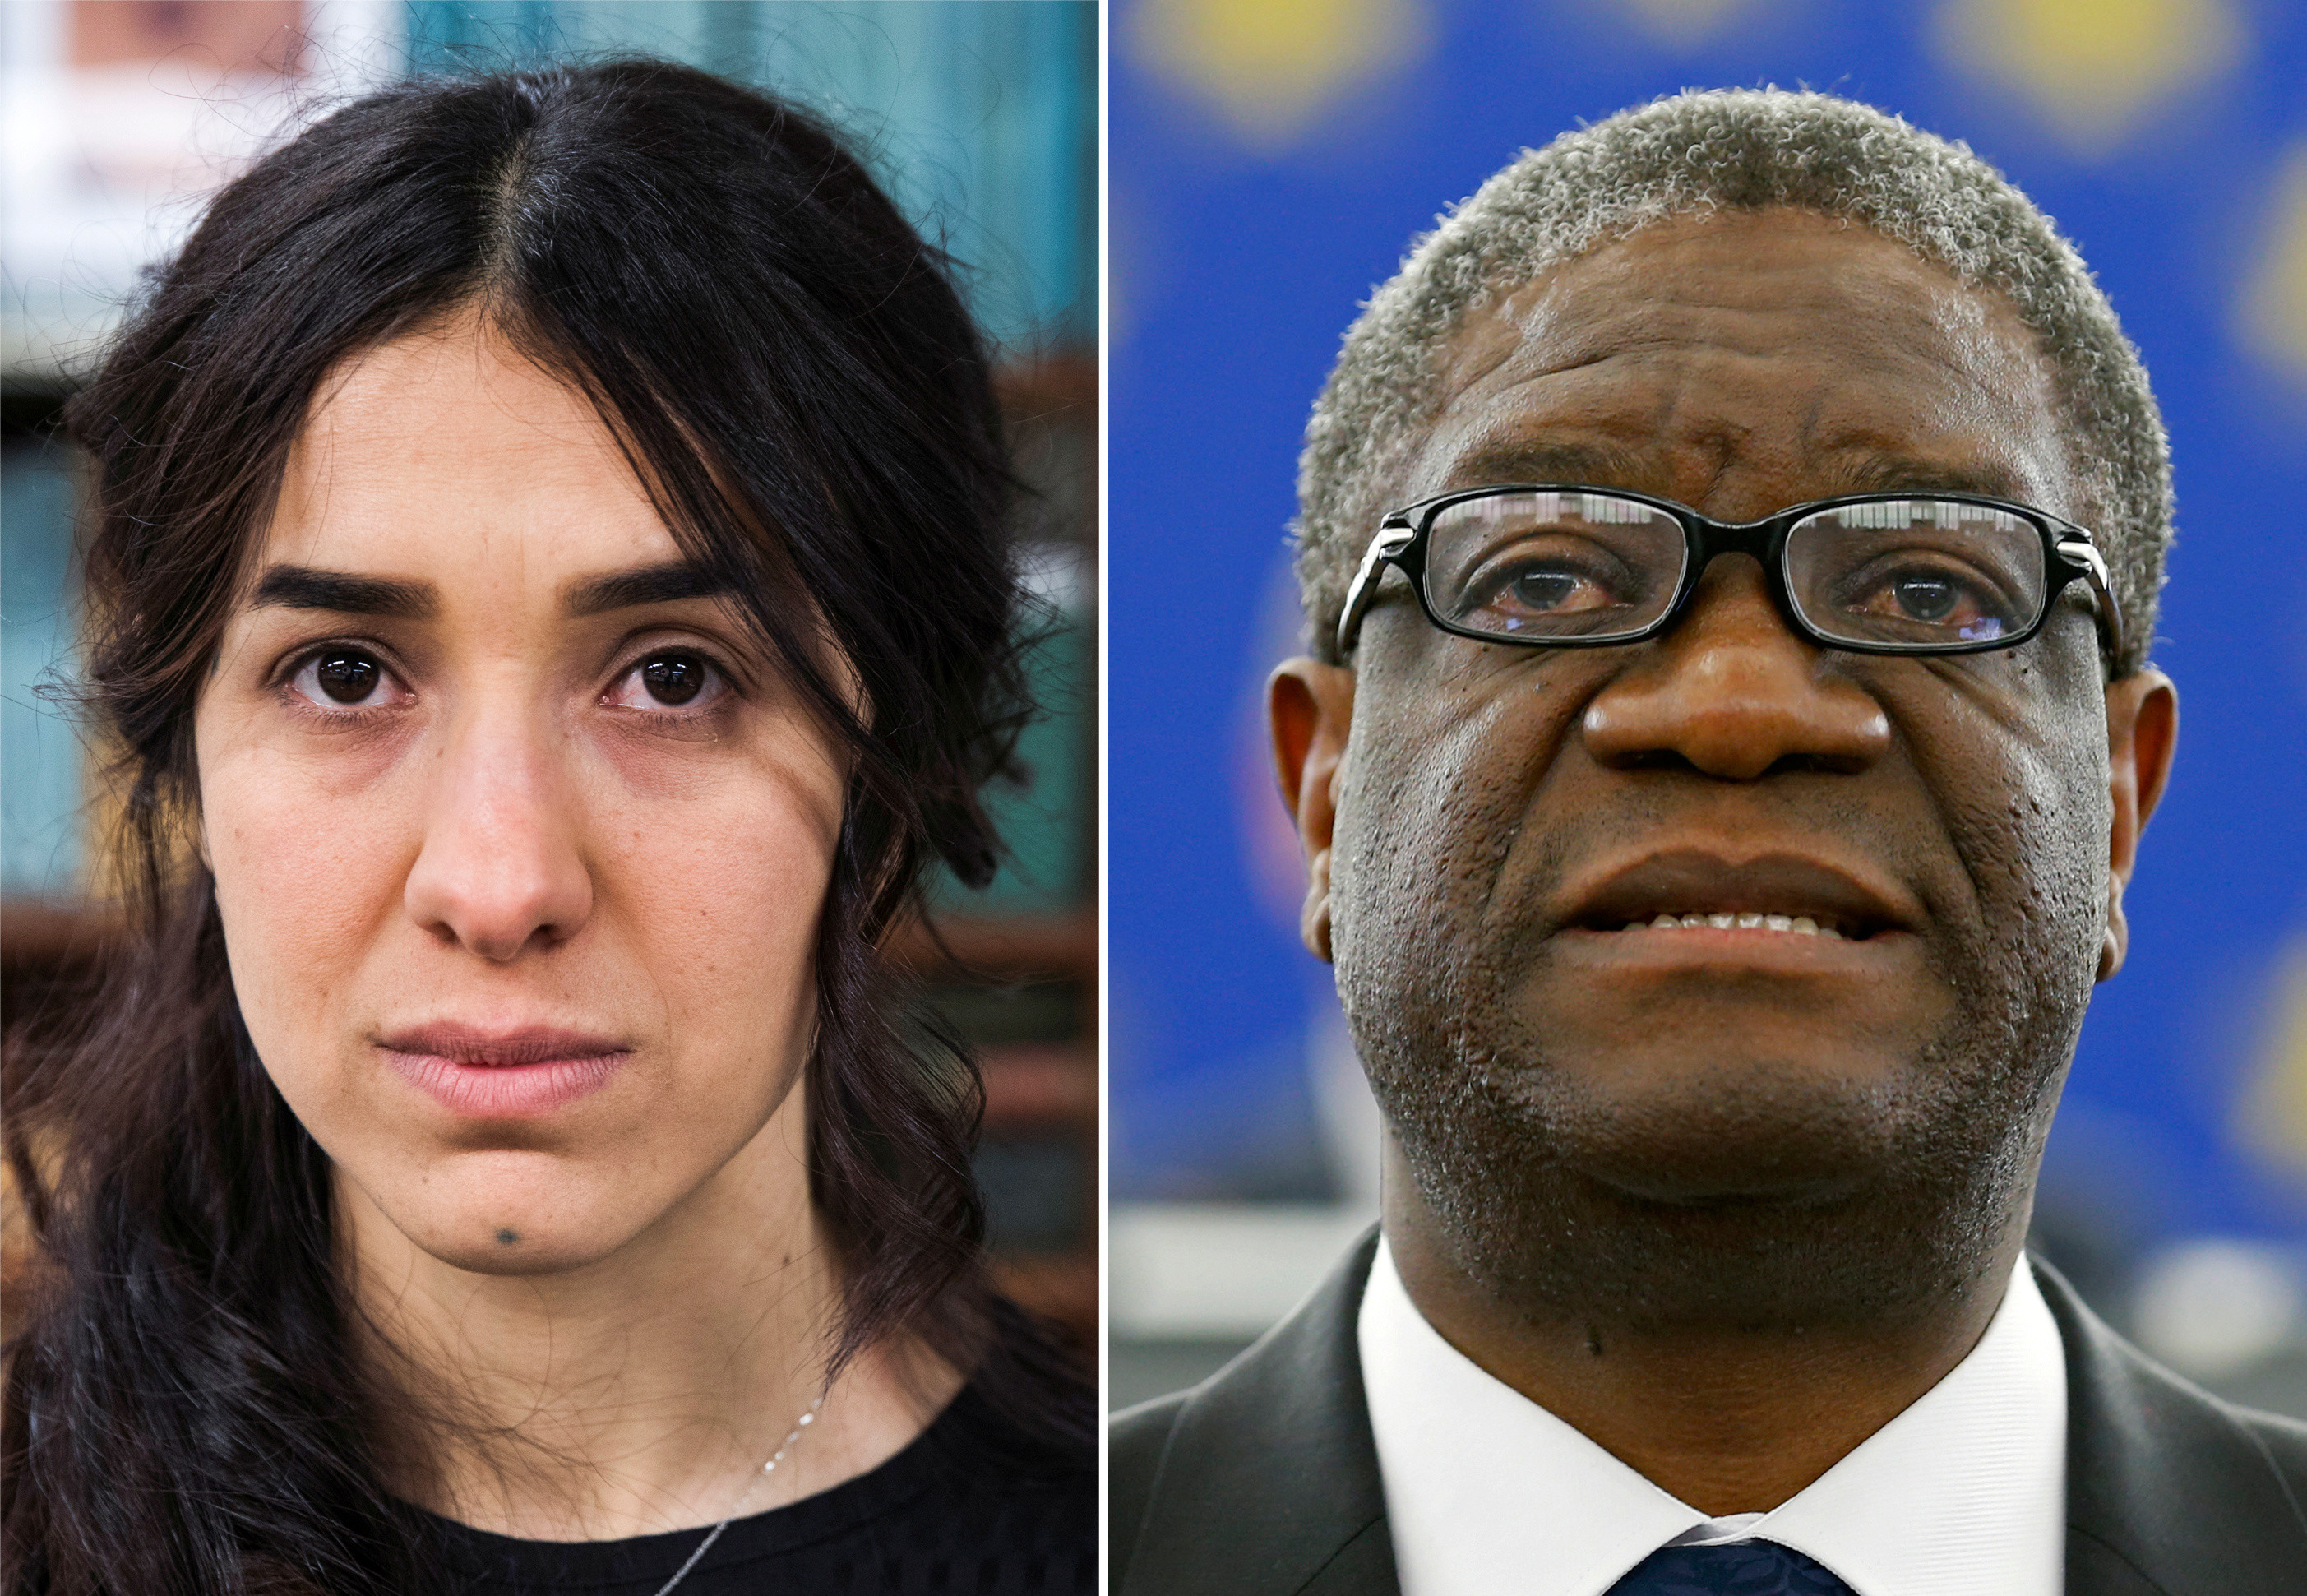 A combination picture shows the Nobel Prize for Peace 2018 winners: Yazidi survivor Nadia Murad posing for a portrait at United Nations headquarters in New York, U.S., March 9, 2017 (L) and Denis Mukwege delivering a speech during an award ceremony to receive his 2014 Sakharov Prize at the European Parliament in Strasbourg November 26, 2014. REUTERS/Lucas Jackson/Vincent Kessler/File photos - RC19678F7730